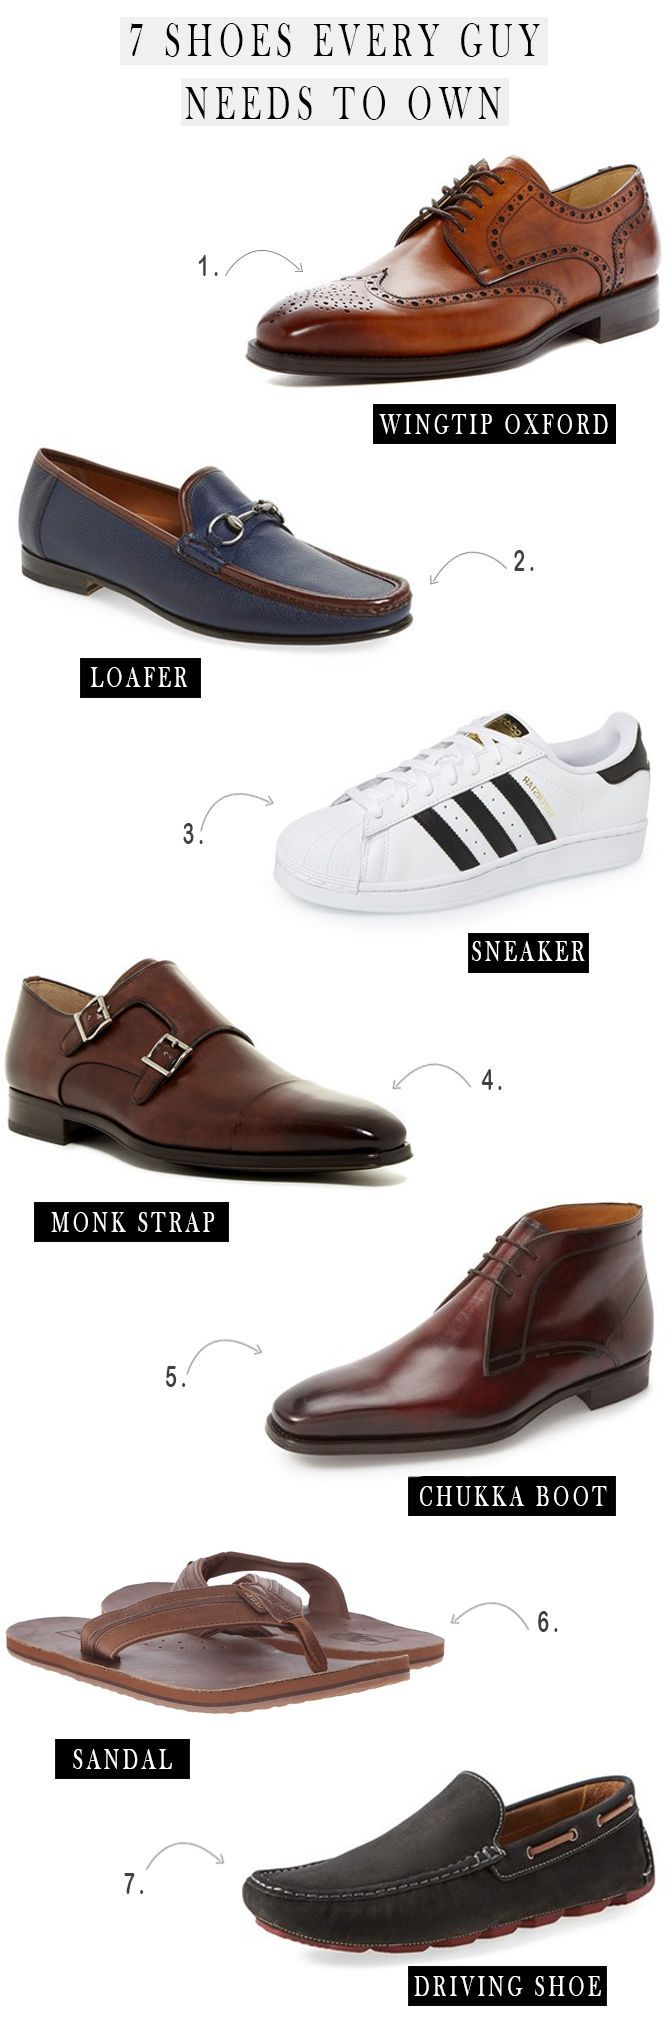 7 Shoes Every Guy Needs to Own - A must for Men